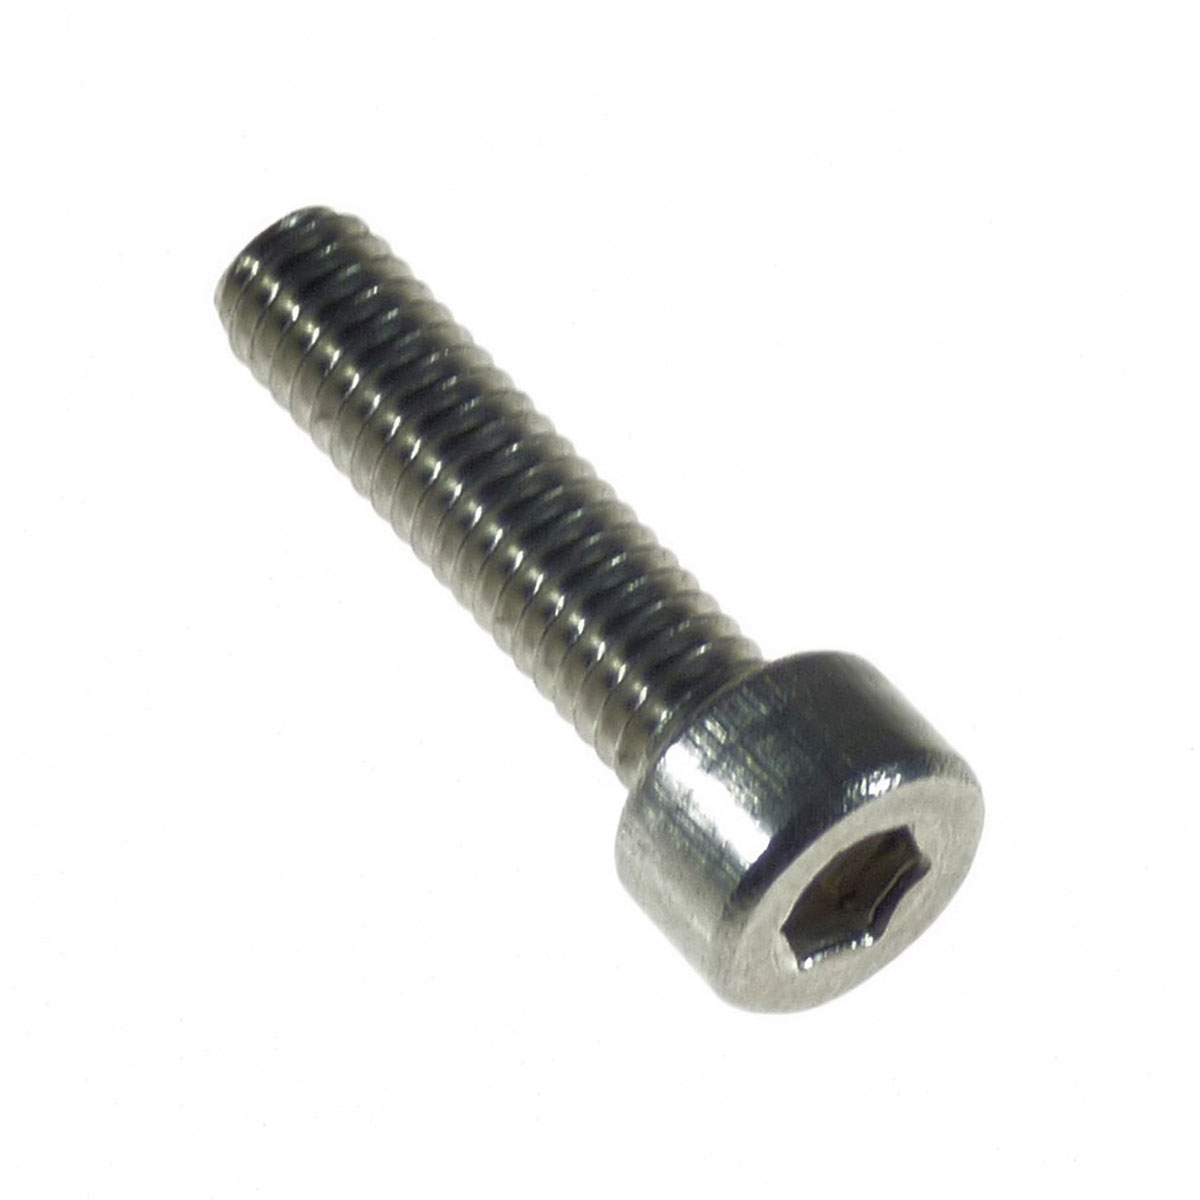 Torqeedo Hex Screw M4x16mm